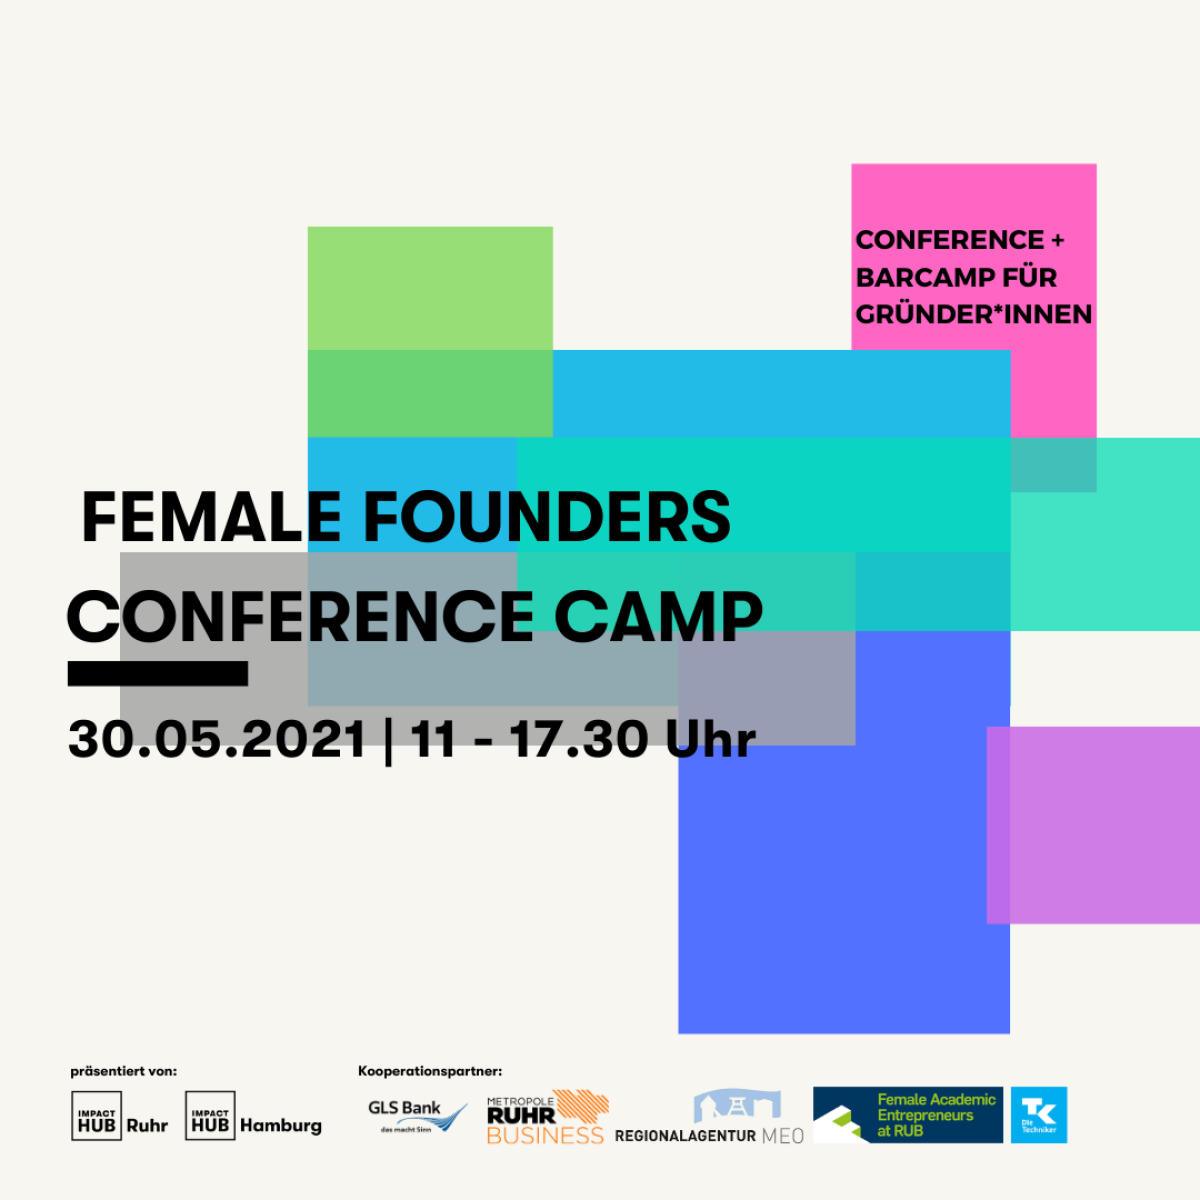 2. Female Founders Conference Camp